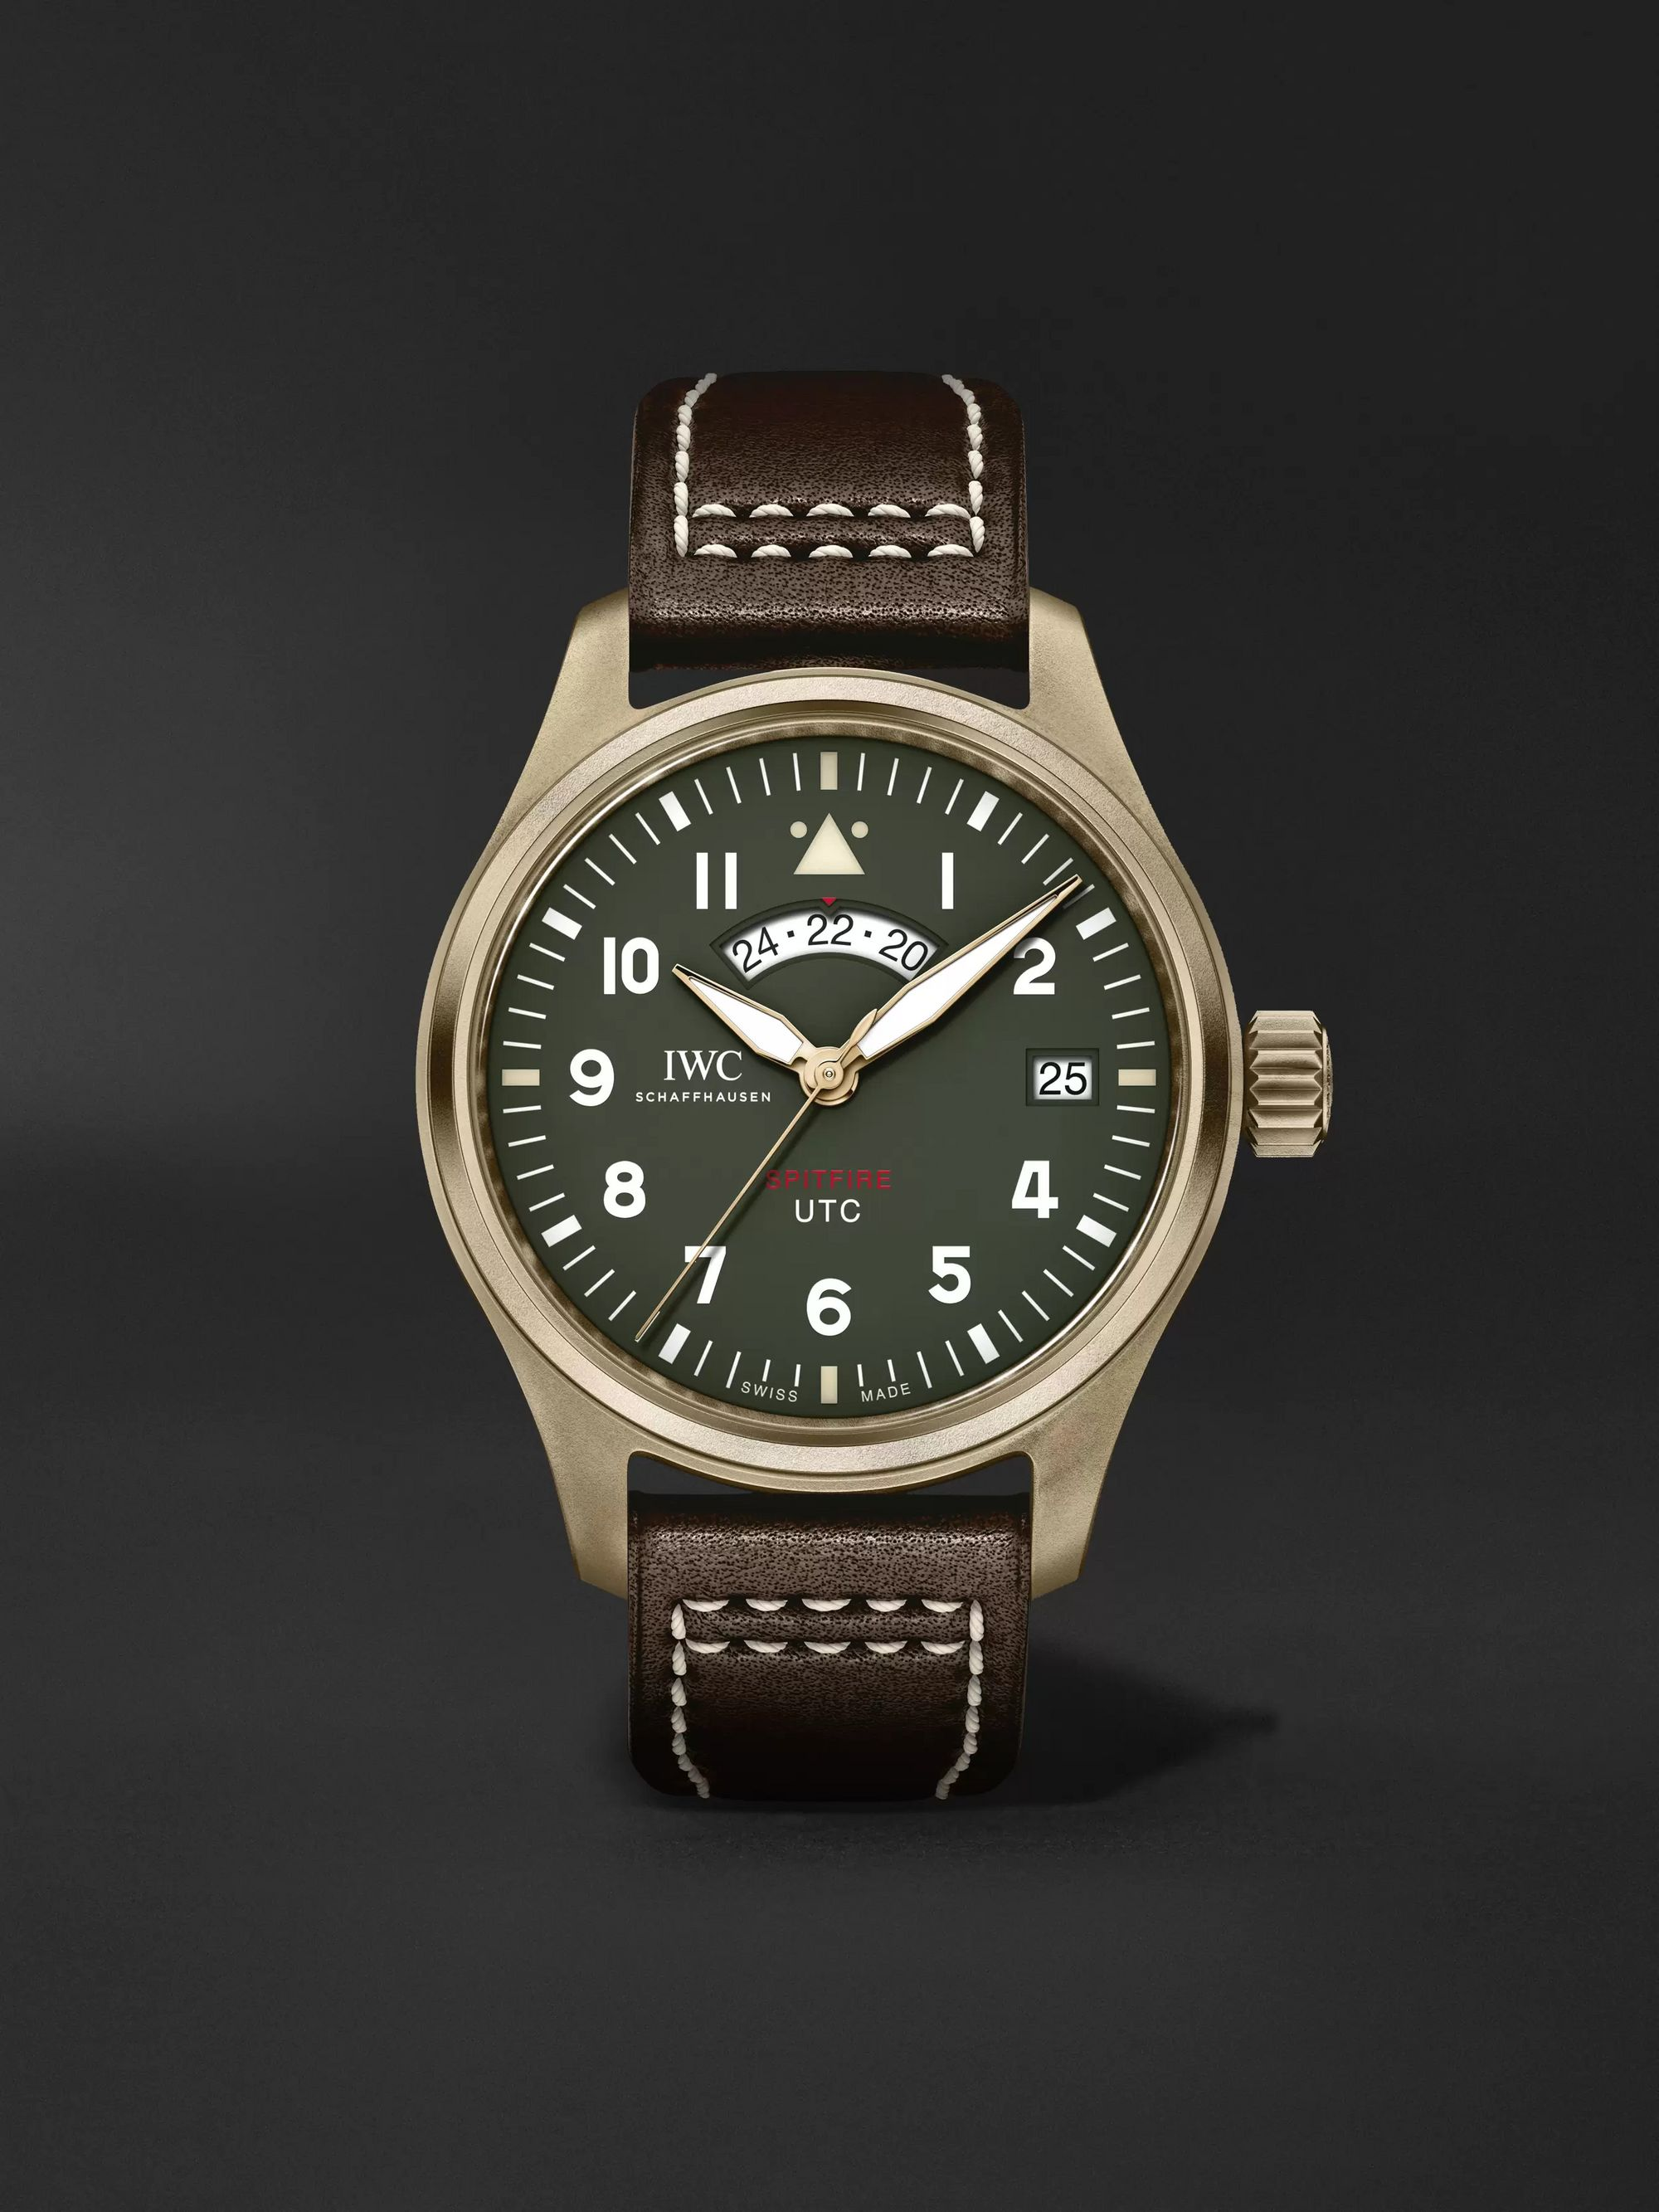 Pilot S Utc Spitfire Edition Mj271 Automatic 41mm Bronze And Leather Watch